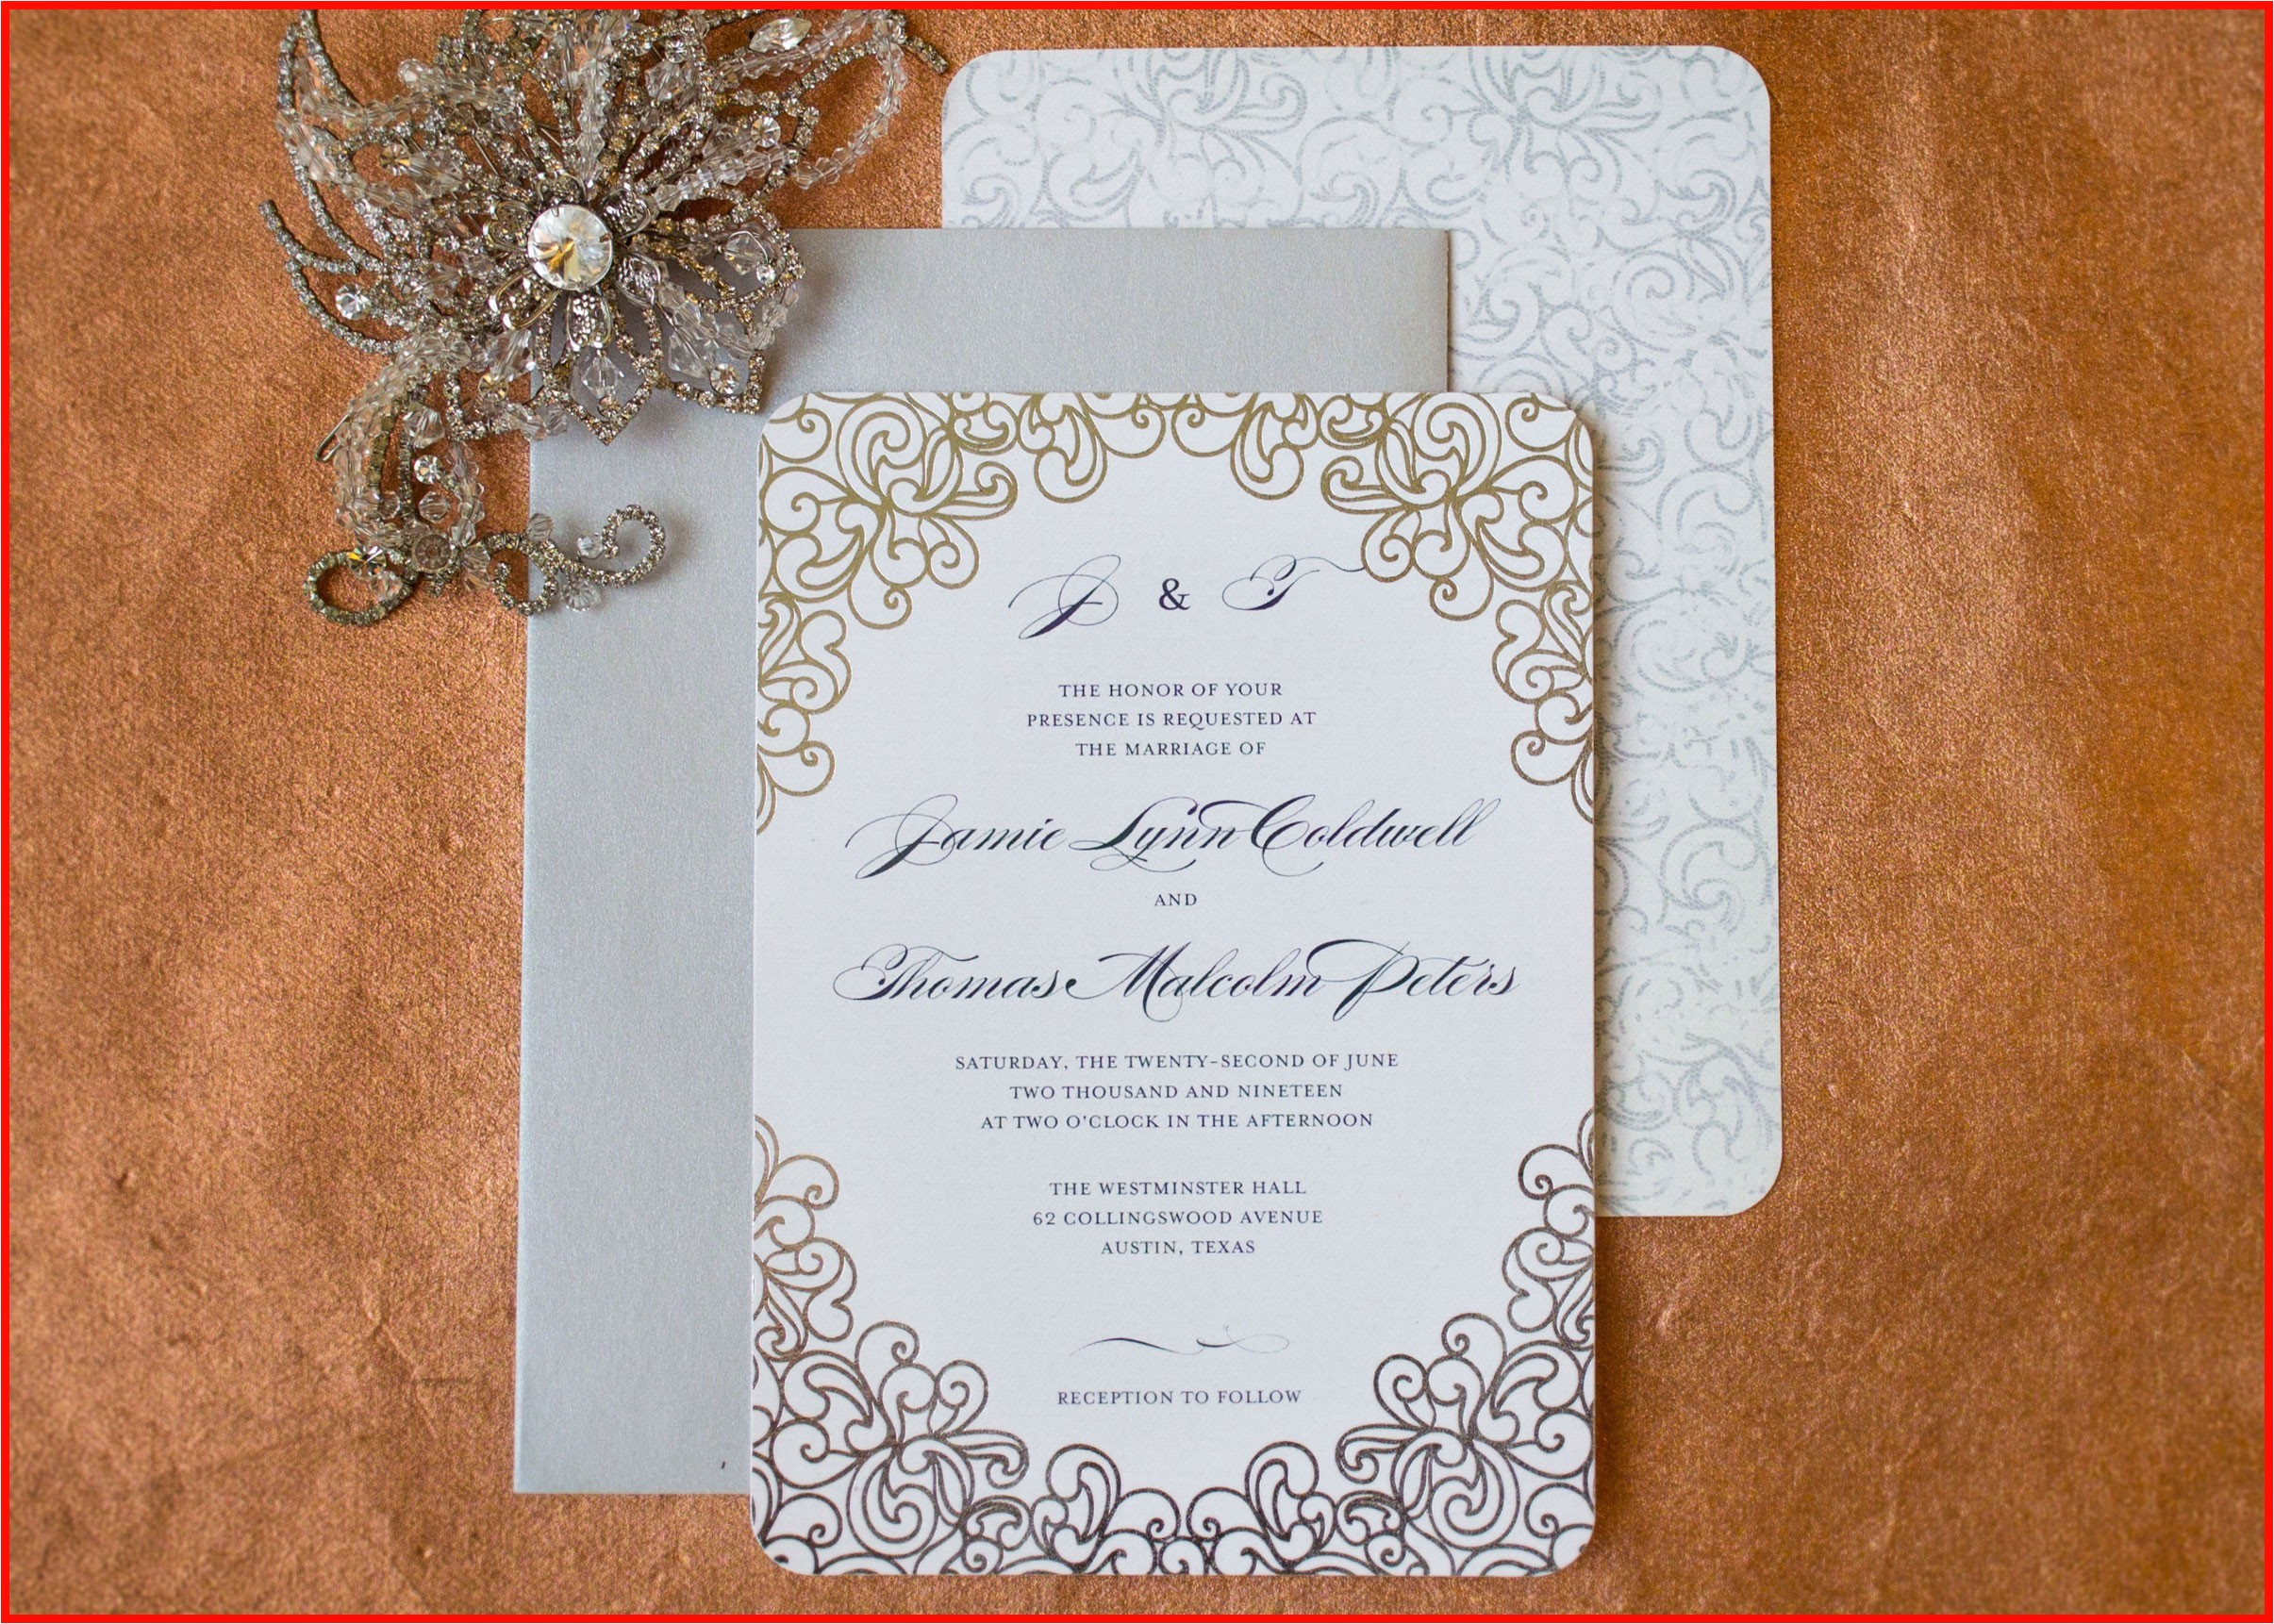 wedding invitations shutterfly 63990 invites menu cards more how the wedding shop by shutterfly can